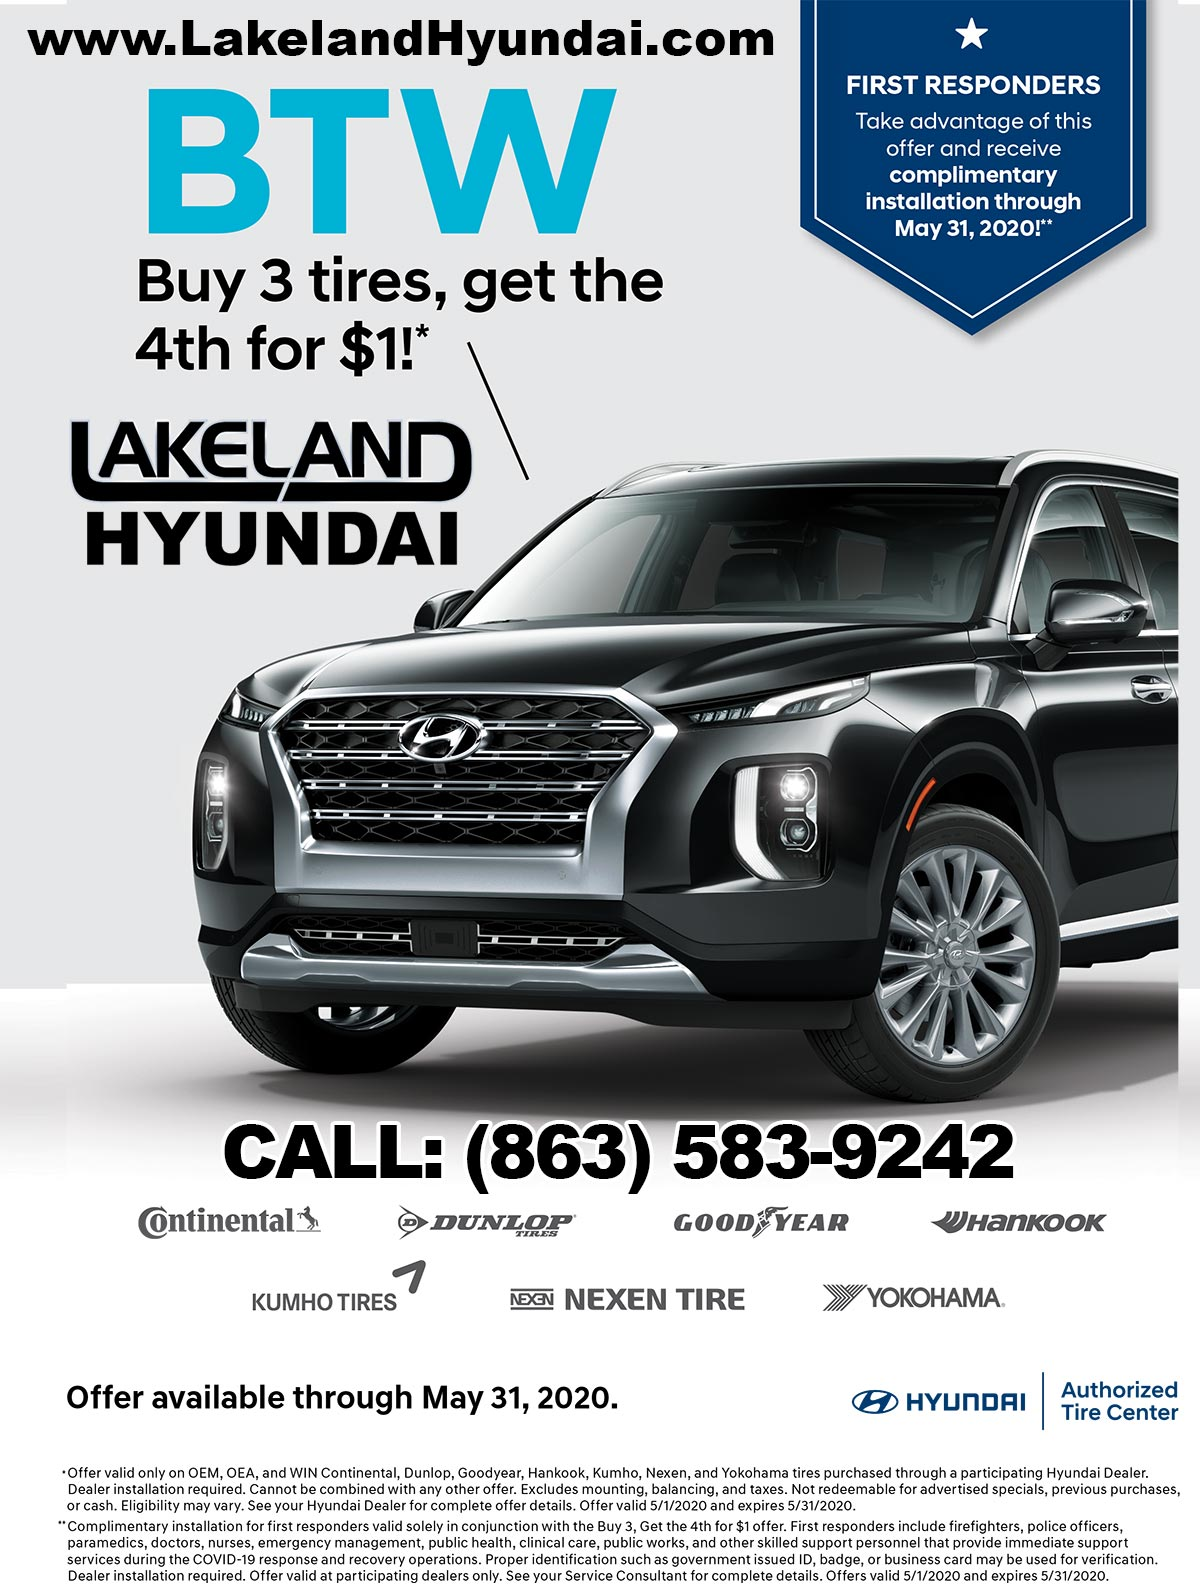 Special Offer from Lakeland Hyundai